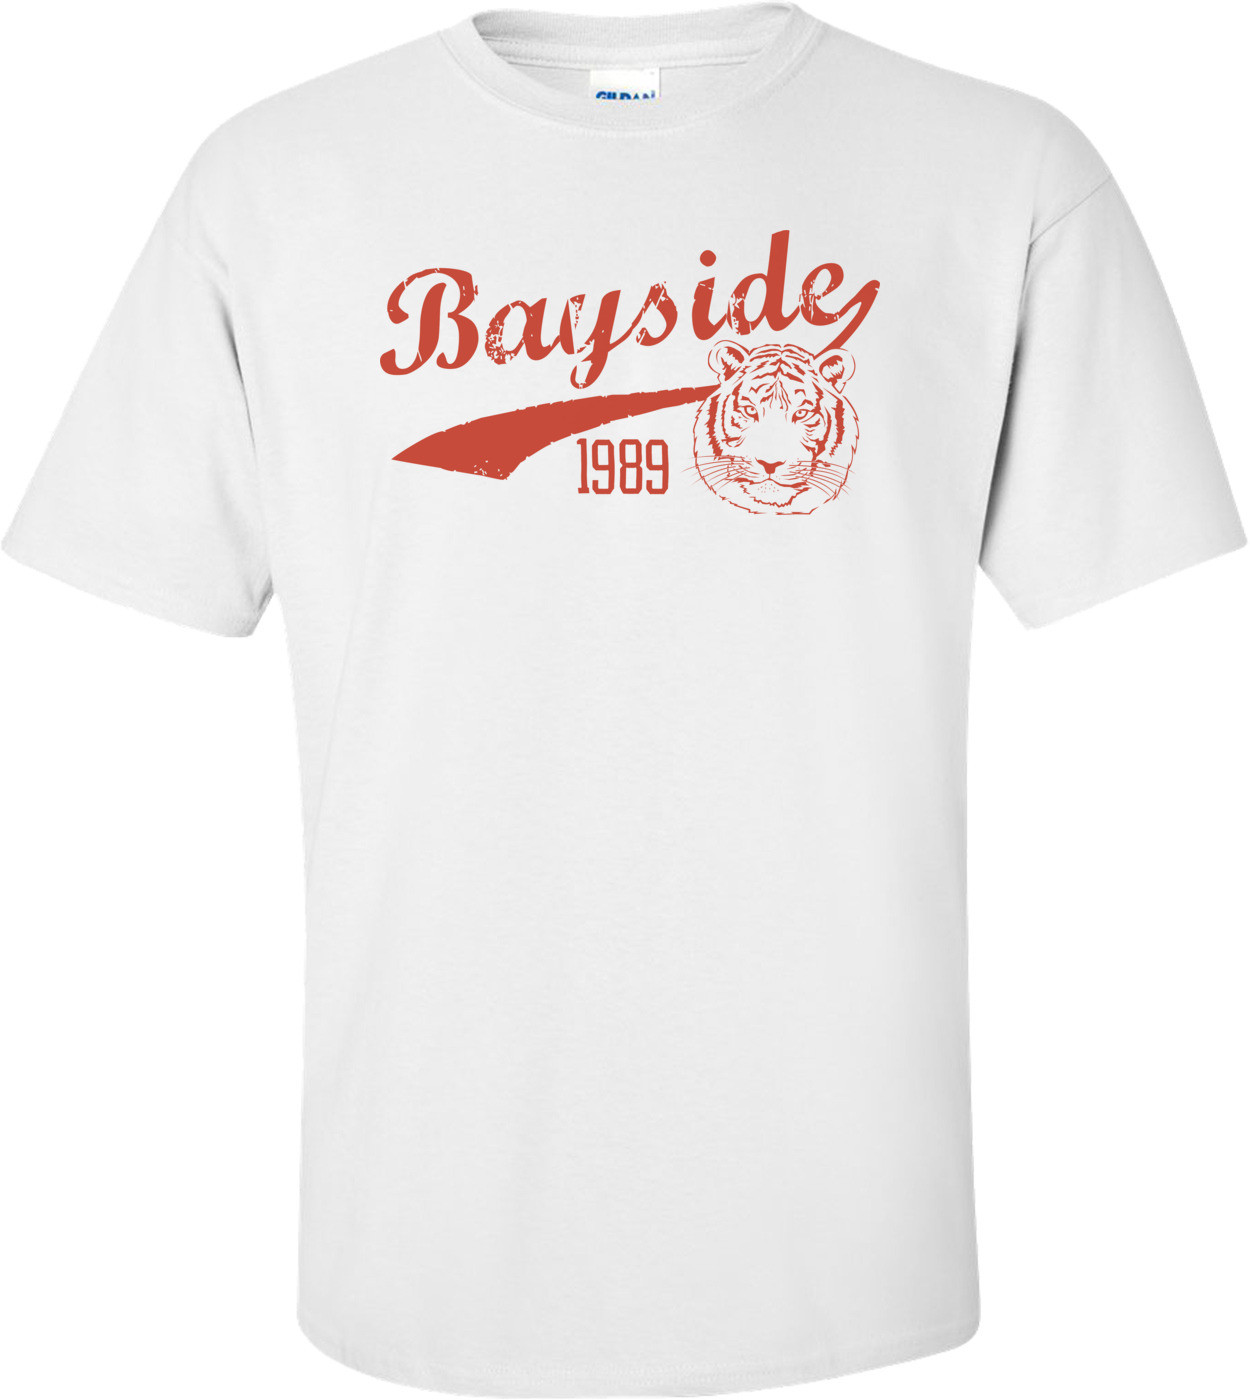 Bayside 1989 - Saved By The Bell T-shirt